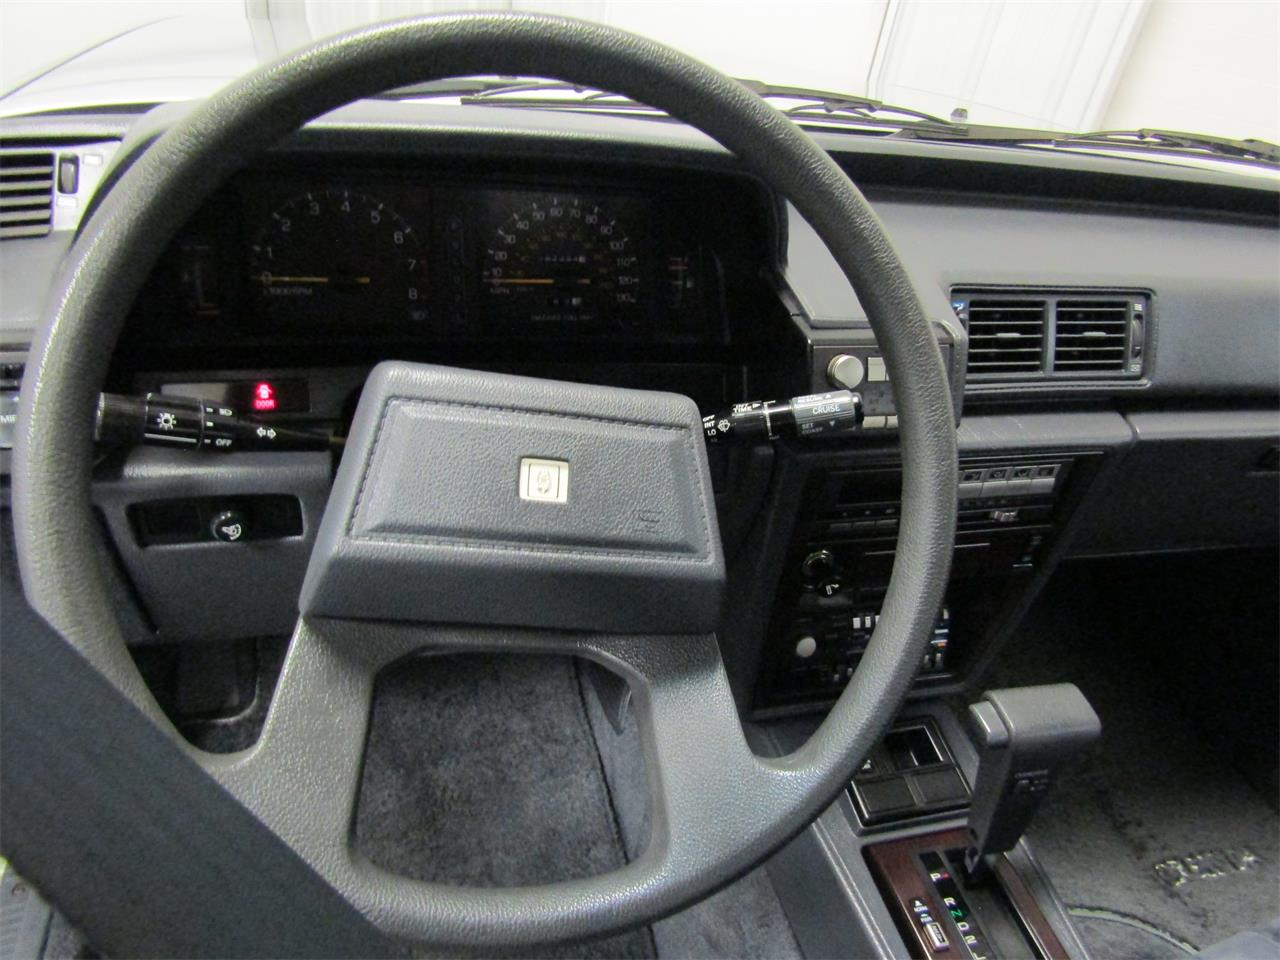 1985 Toyota Cressida for sale in Christiansburg, VA – photo 19